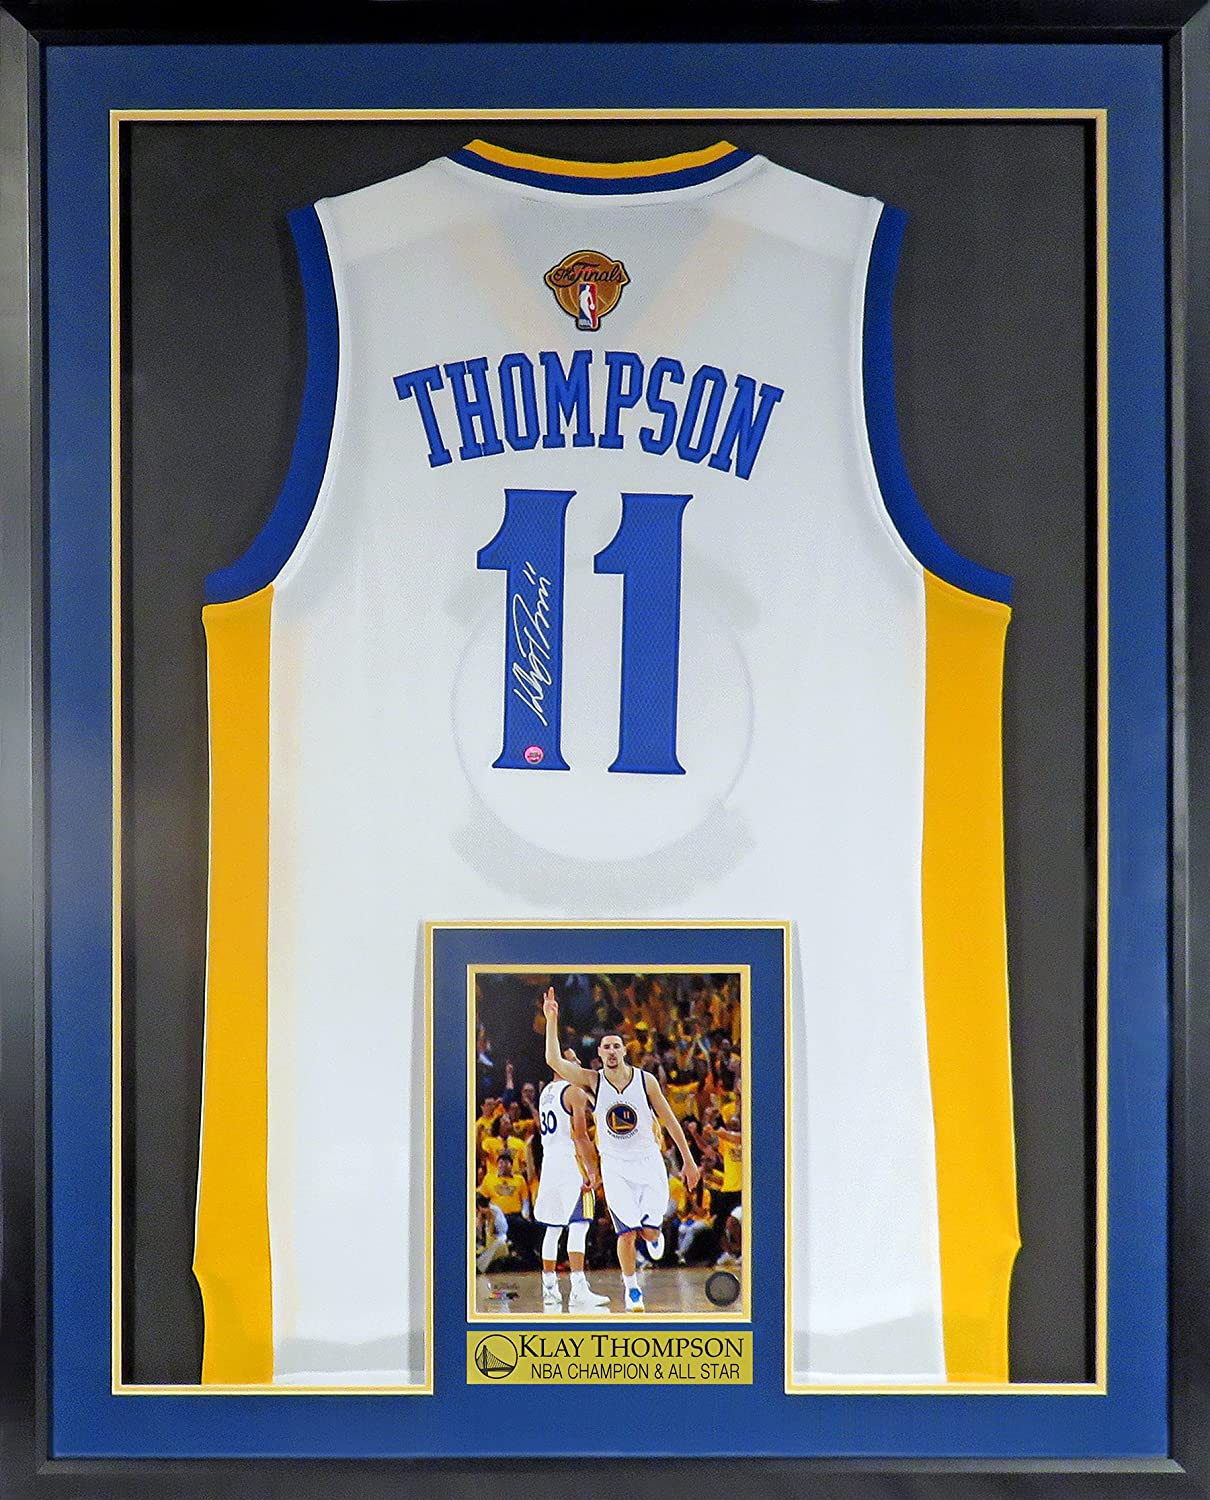 cheaper 62287 66079 GS Warriors Klay Thompson Autographed Home Jersey w/ Finals ...